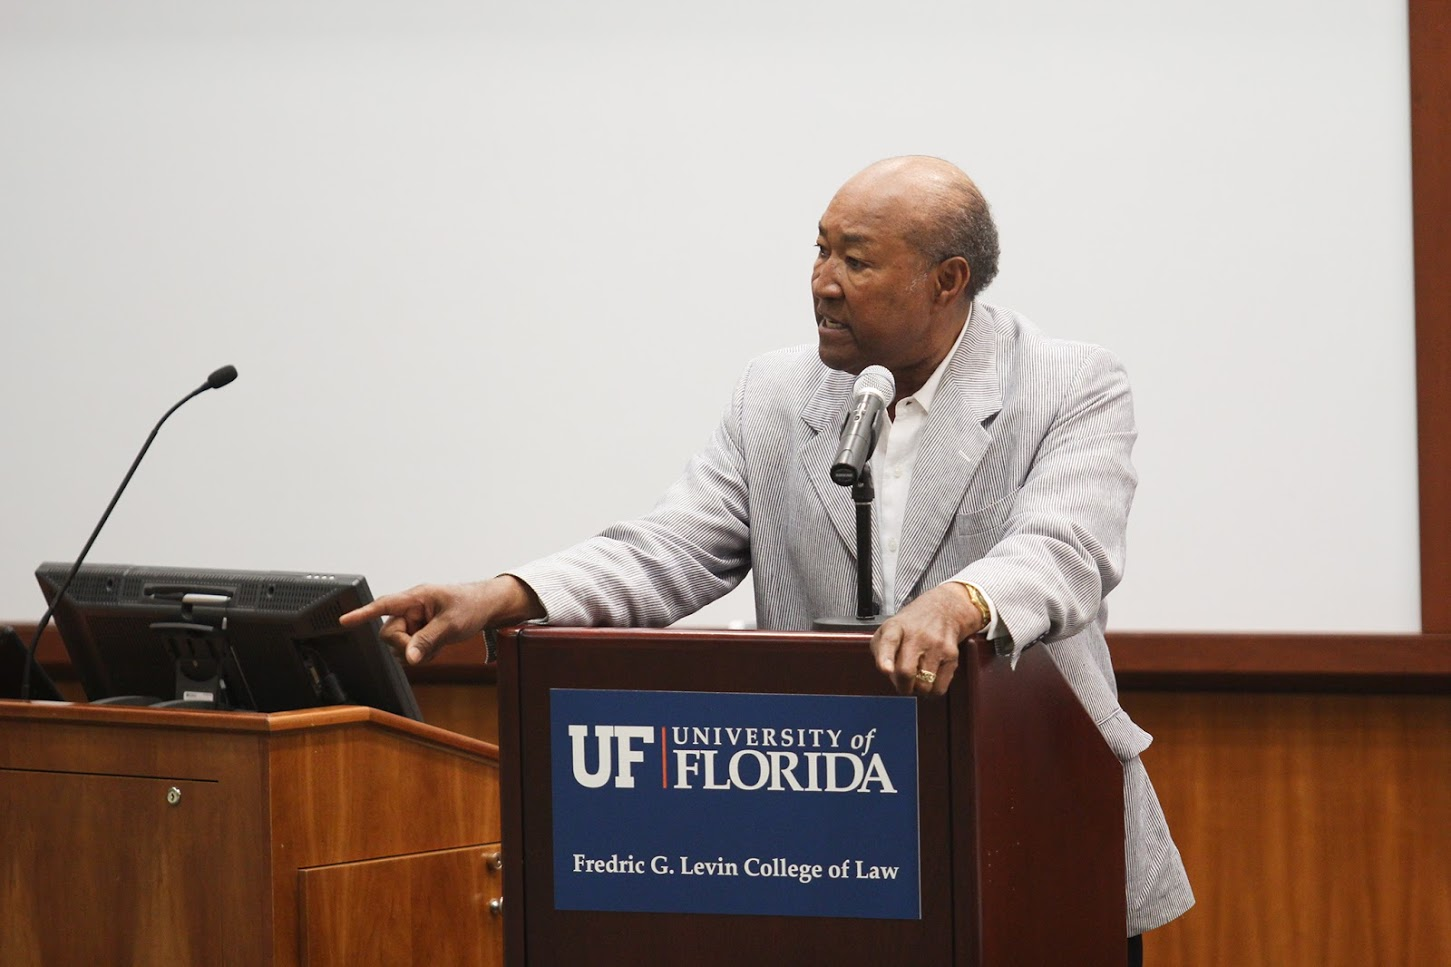 Remembering W. George Allen, UF's first African American graduate